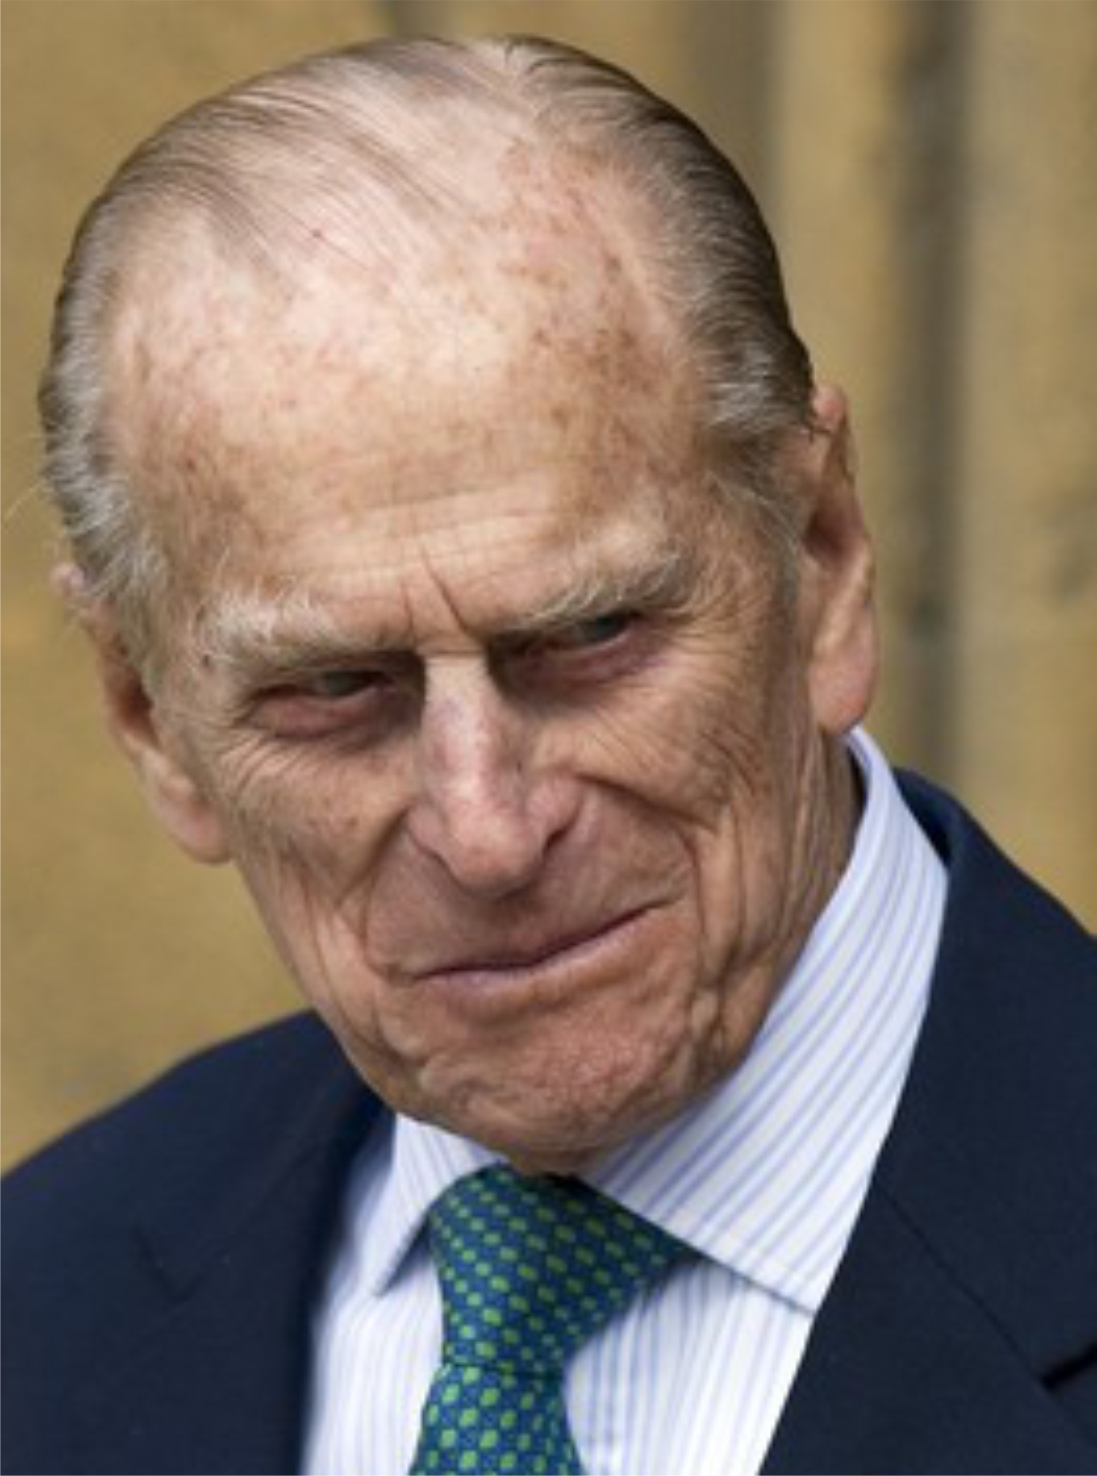 Prince Philip Quotes Provocative Speculation Re Prince Harry And Unfolding Illuminati